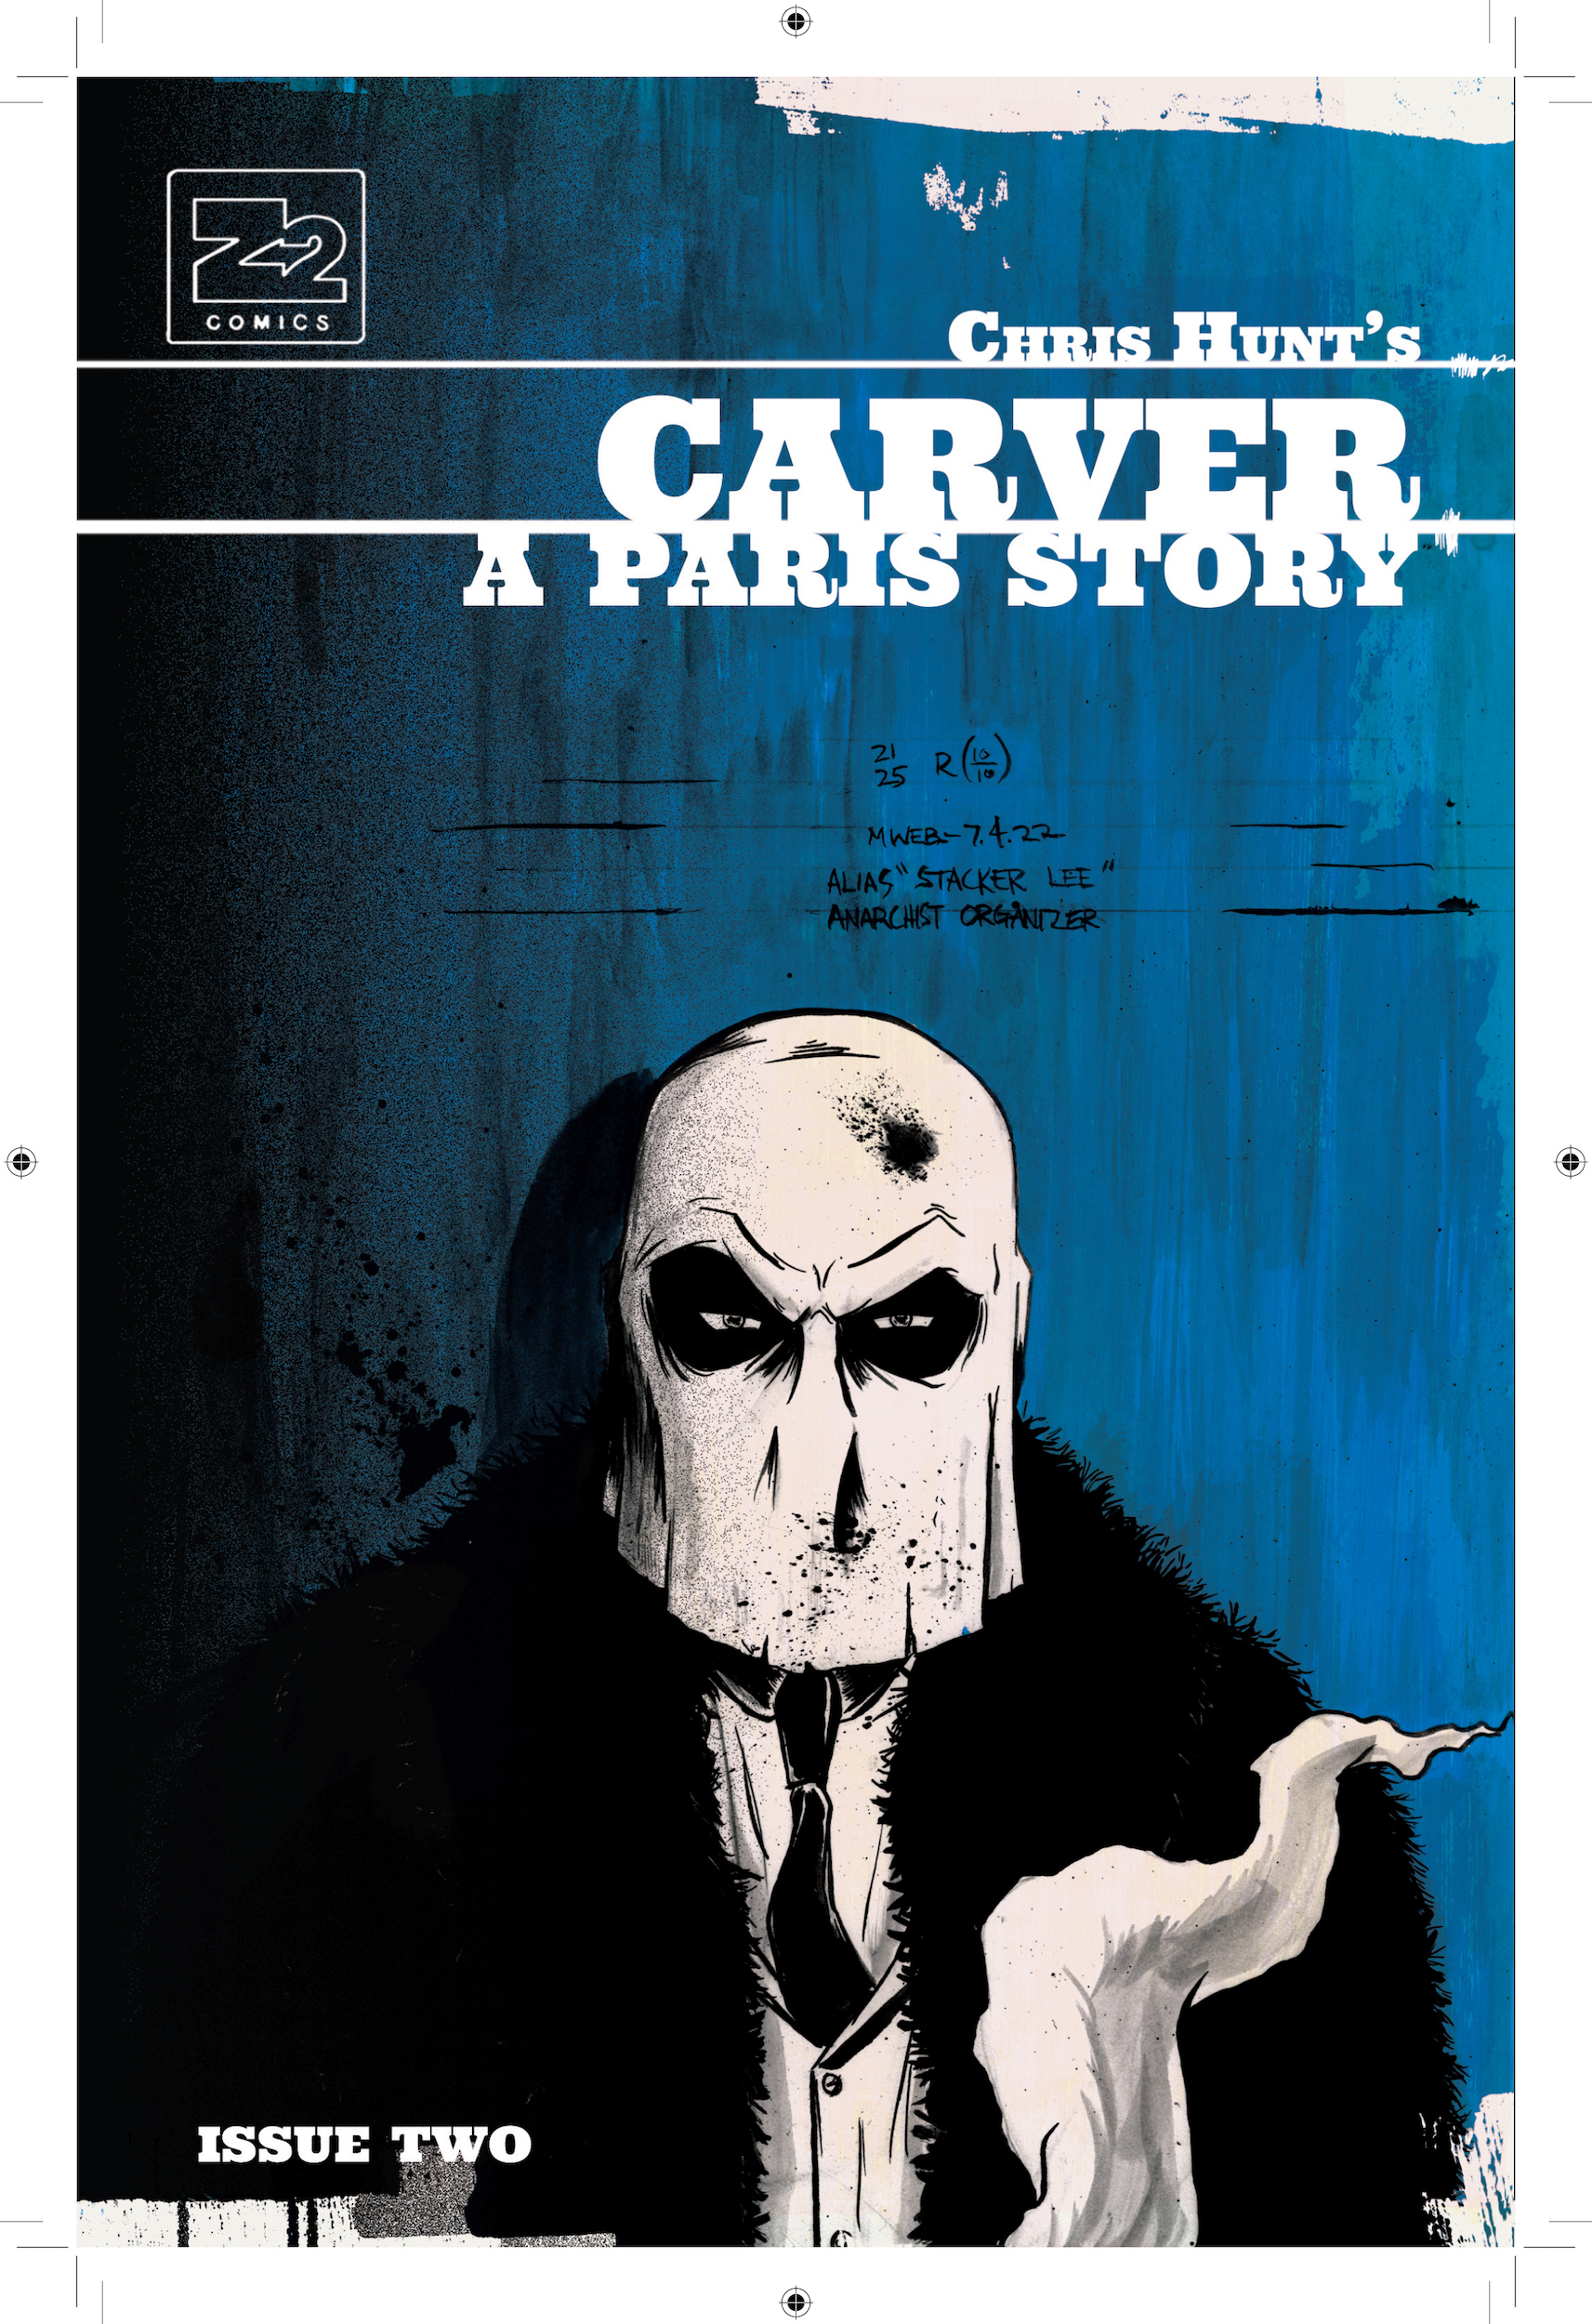 CARVER: A Paris Story Issue 2